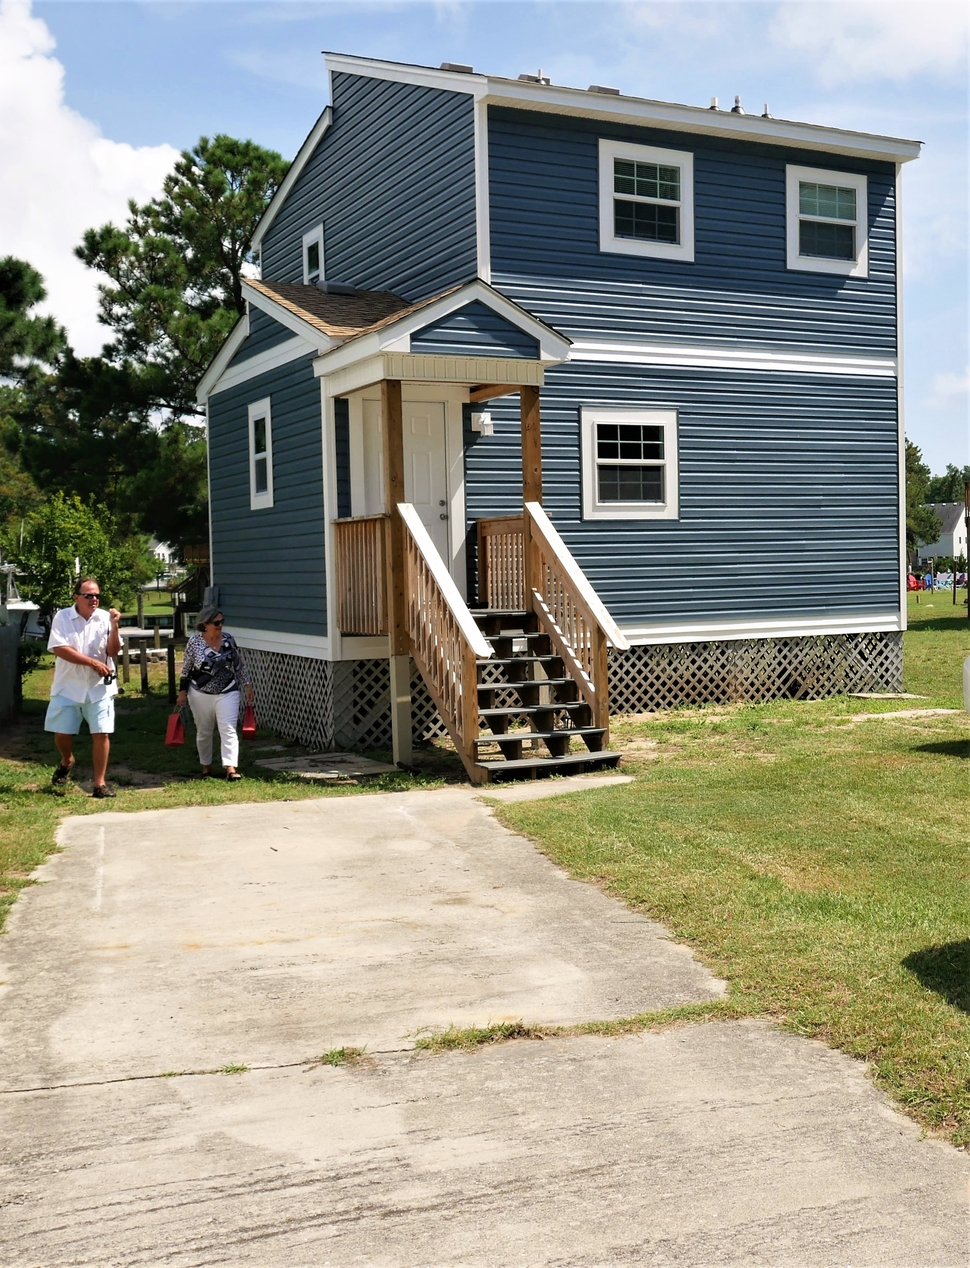 The house cost more than many Habitat homes because the price of island real estate, but lots of volunteer hours for its renovation made it affordable.